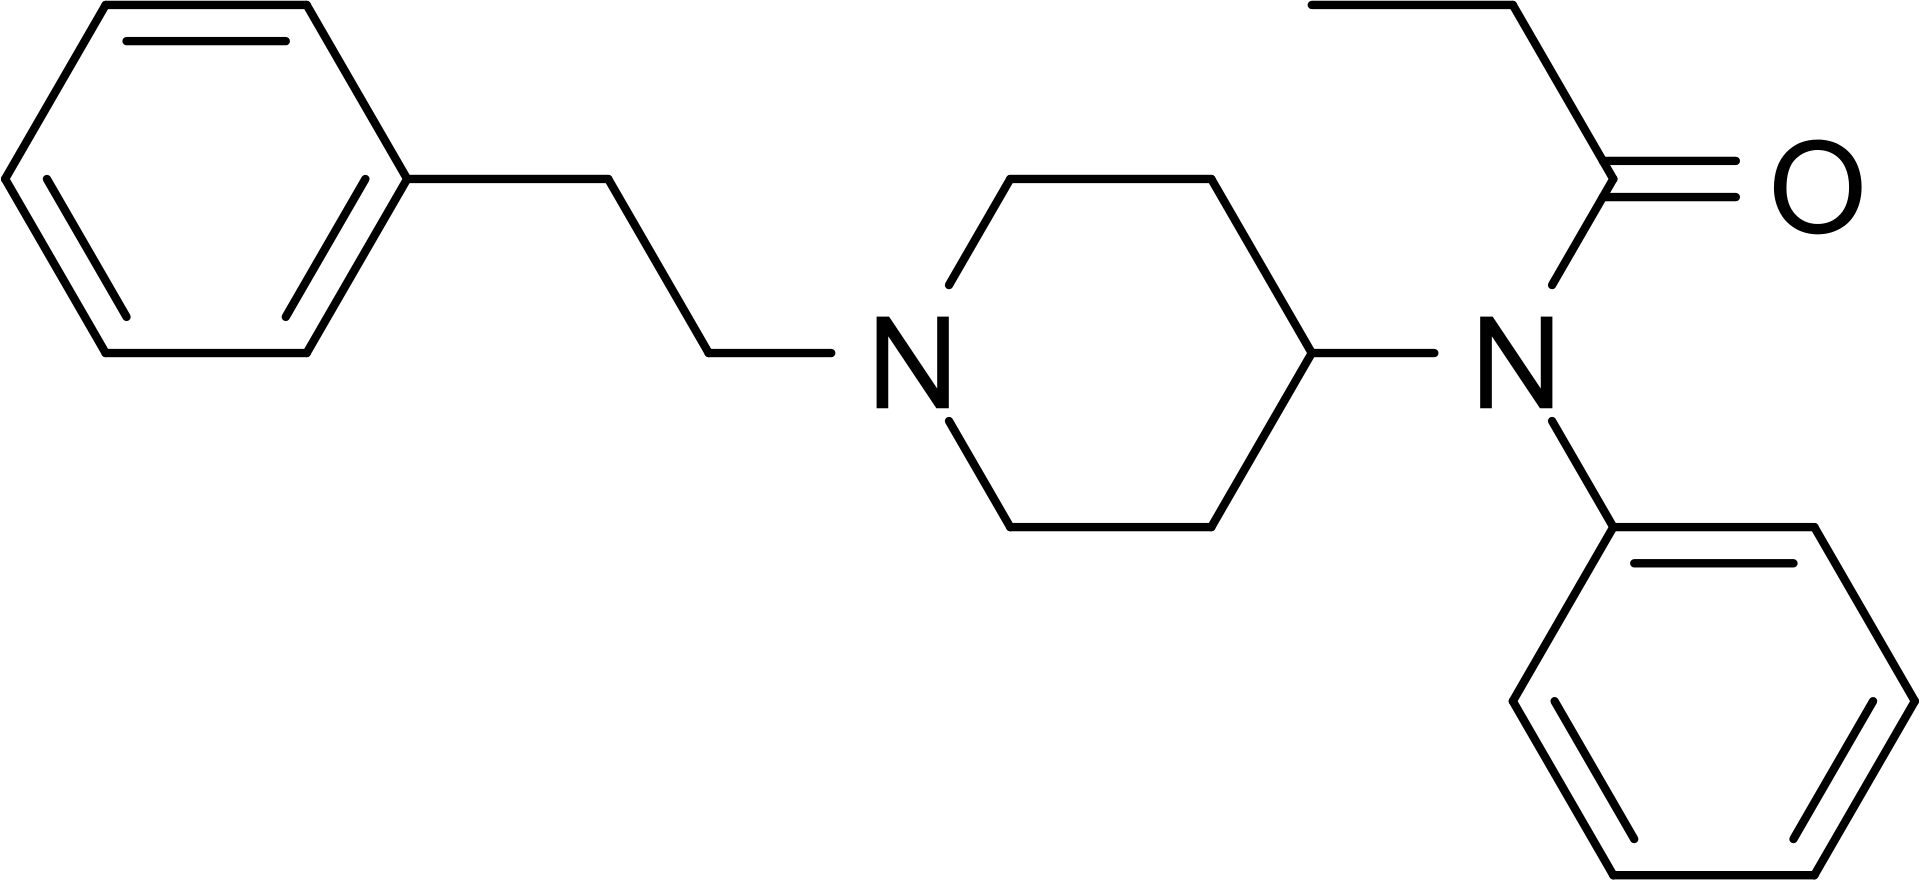 Fentanyl Structure